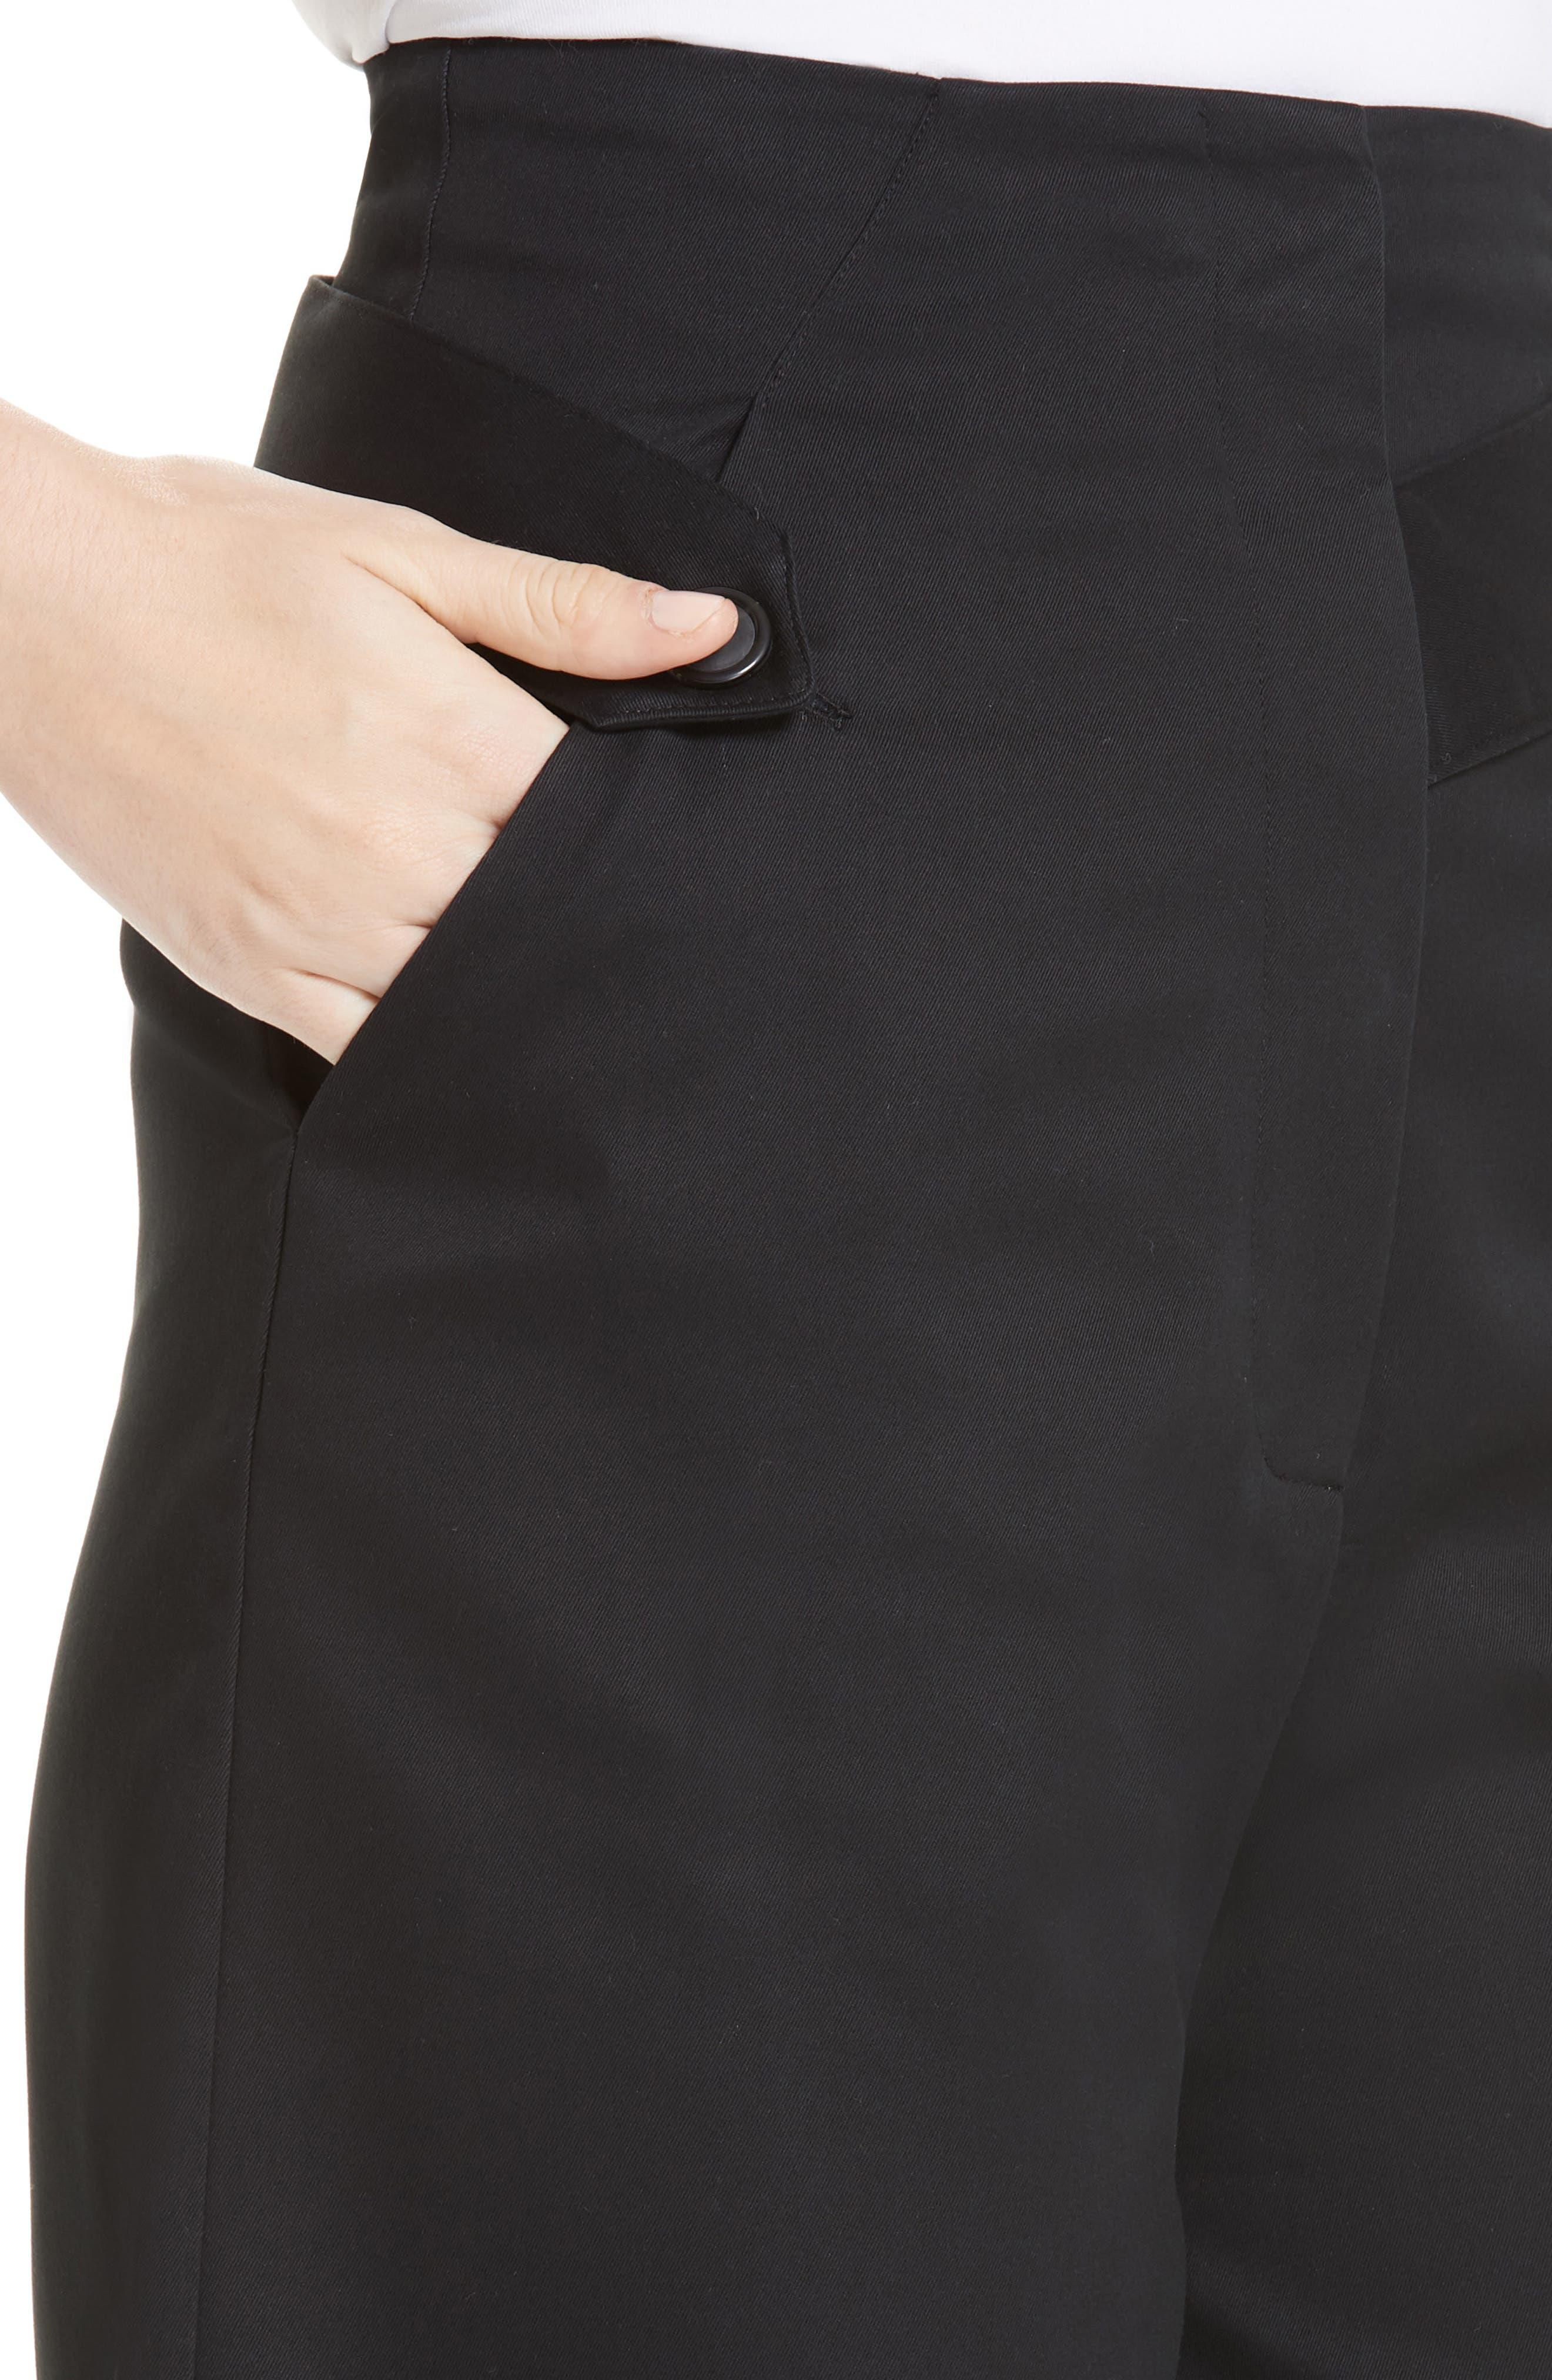 Palmer Harding Distorted Culottes,                             Alternate thumbnail 4, color,                             BLACK COTTON TWILL